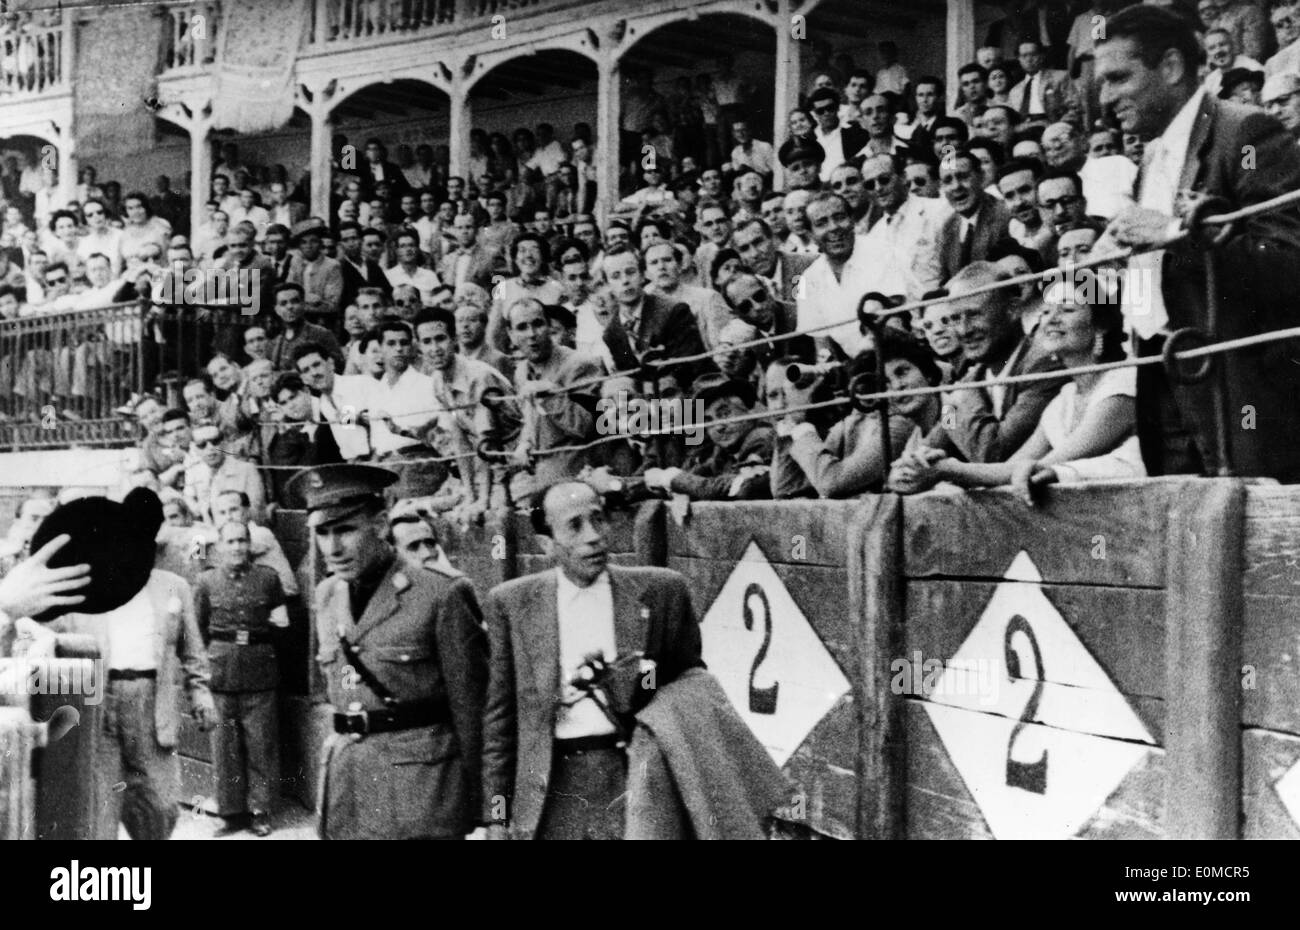 Actor Laurence Olivier at a bullfight - Stock Image